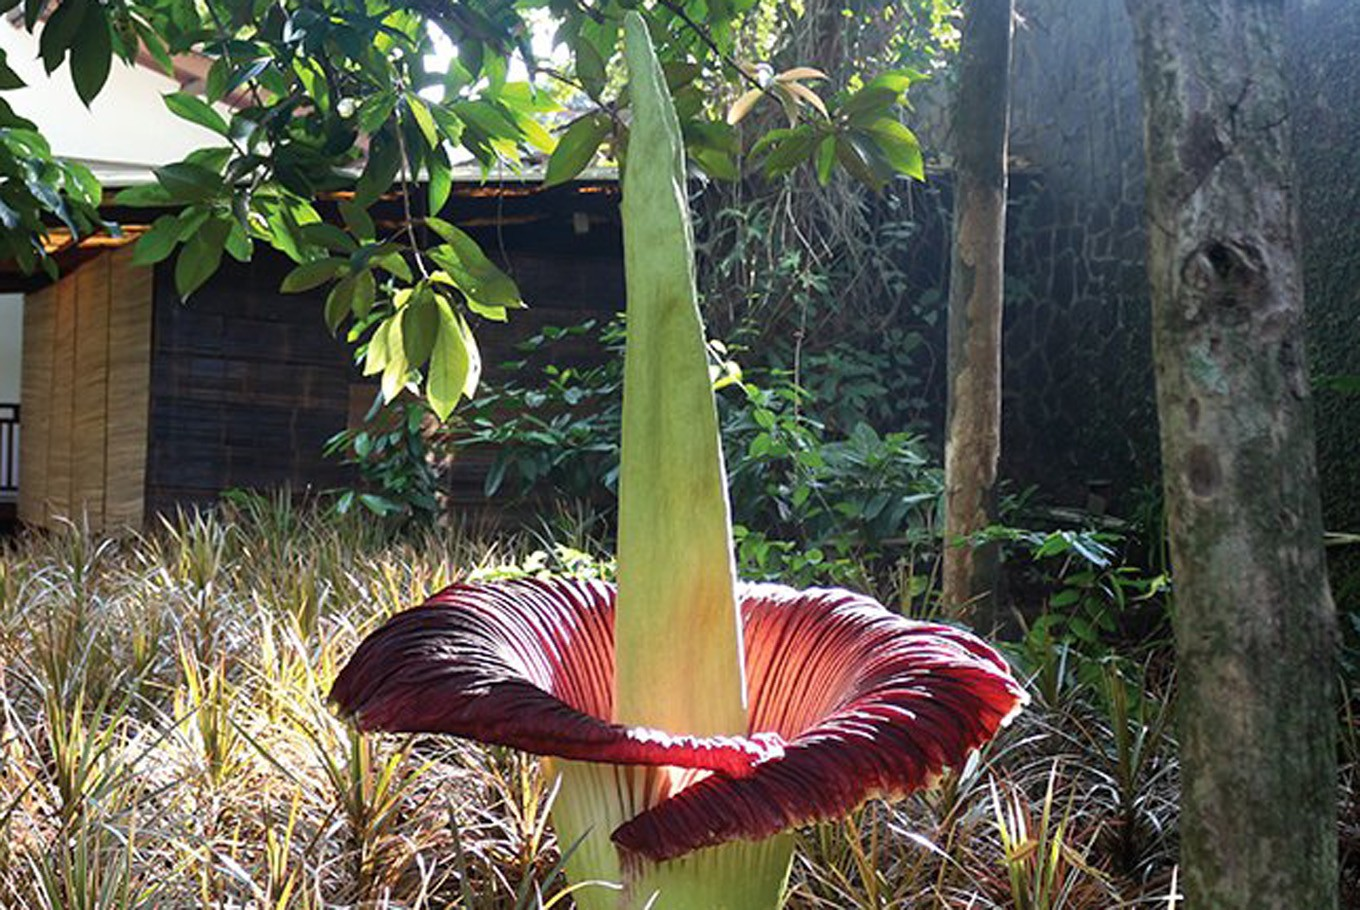 Bengkulu University researchers cultivate two corpse flower species